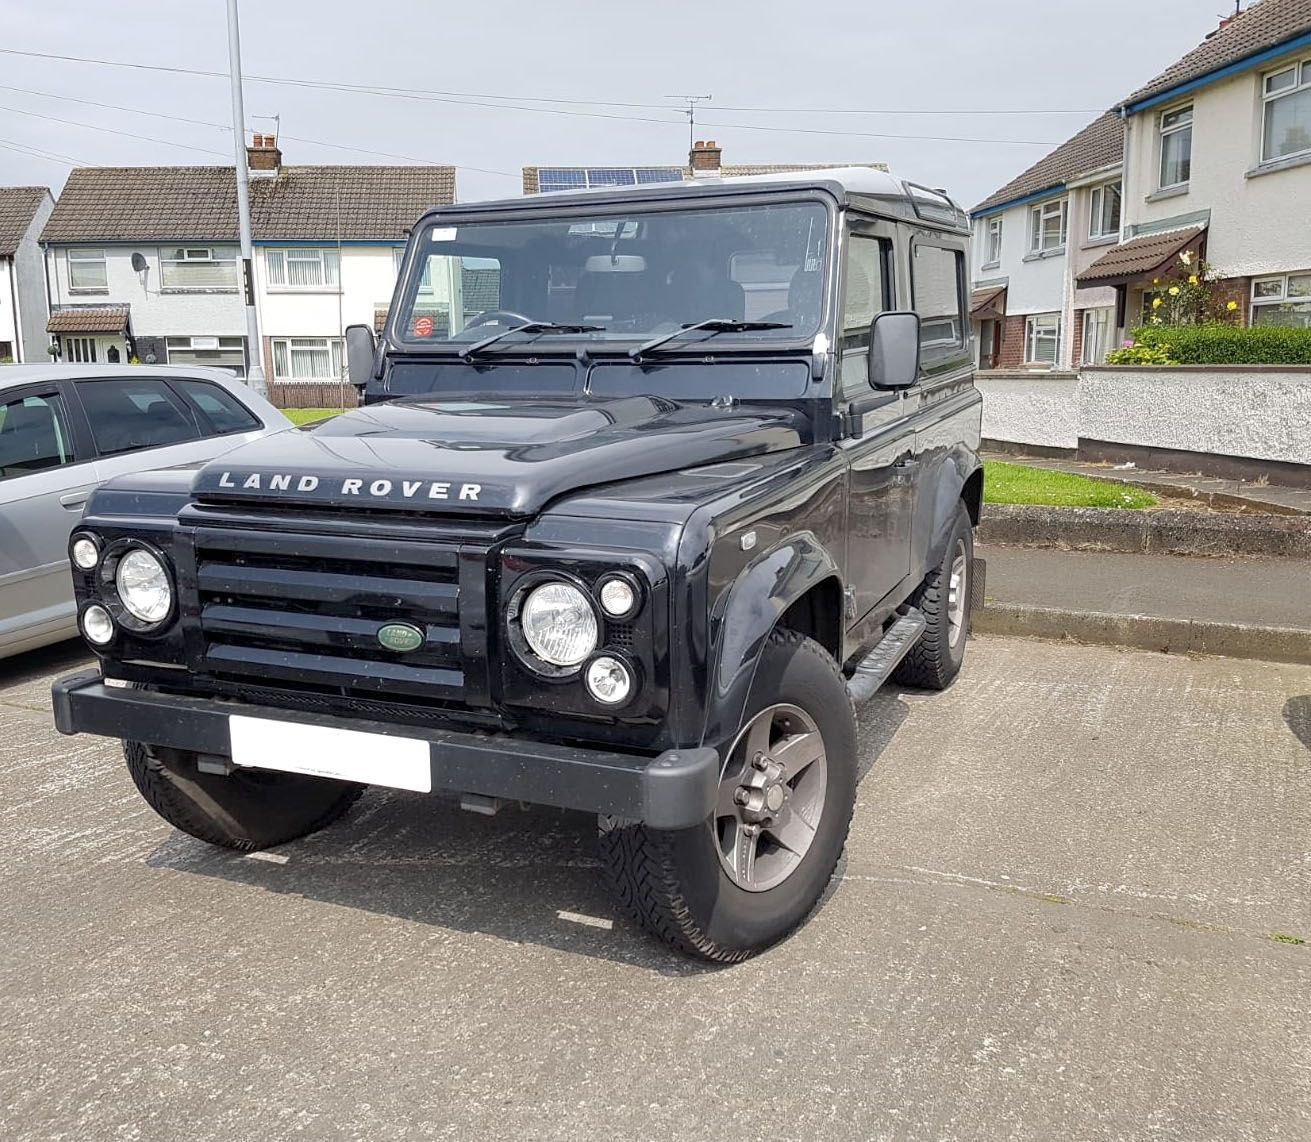 Land Rover Defender which got a radio upgrade supplied and fitted by ourselves